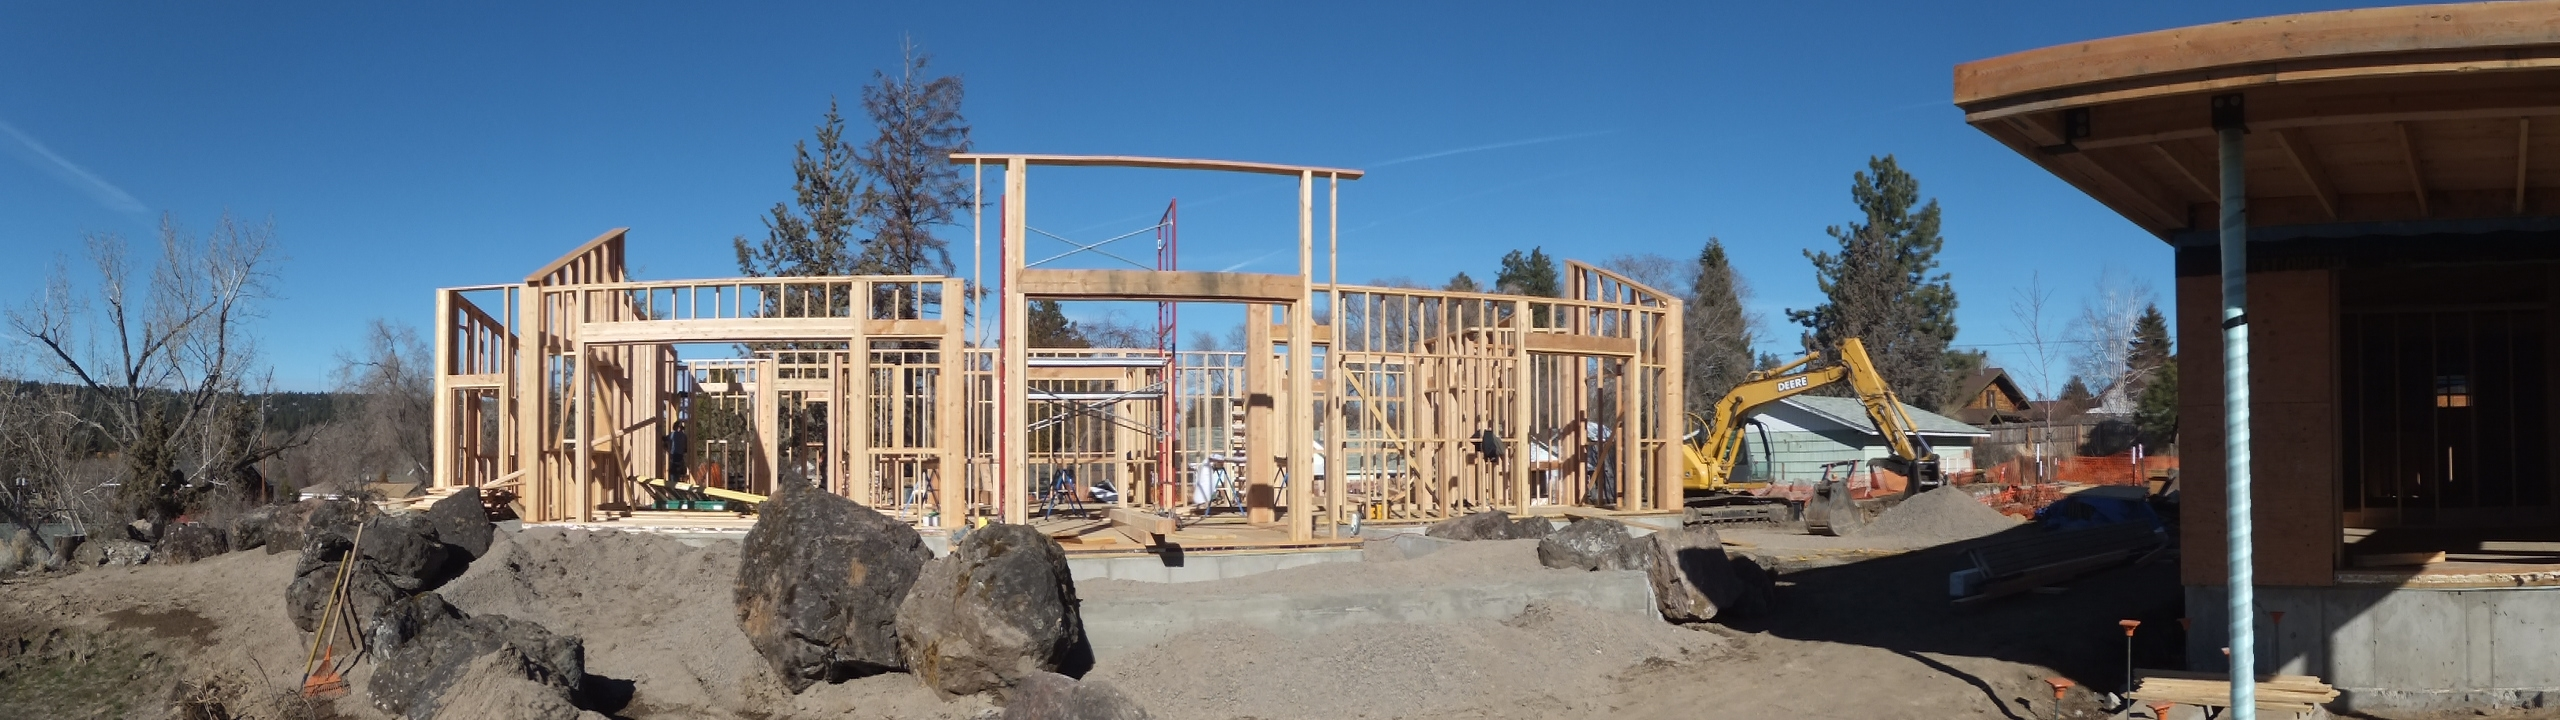 Framed the exterior walls